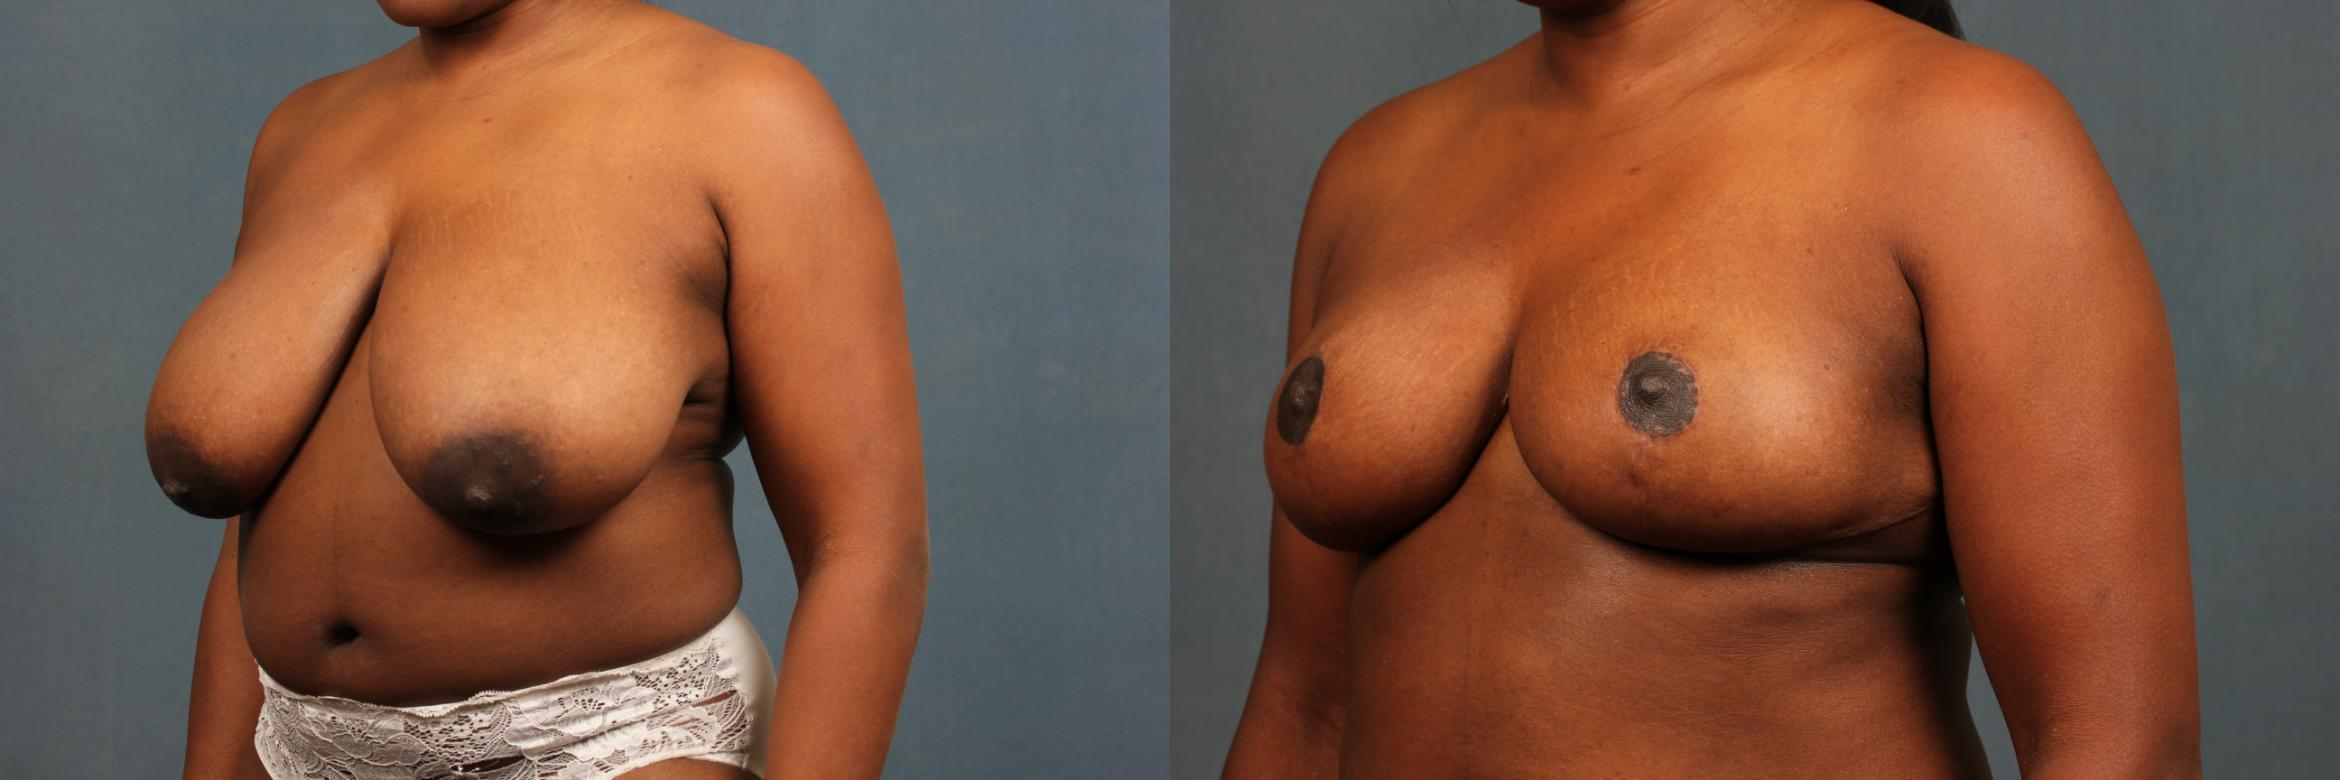 Reduction Case 449 Before & After View #2 | Louisville & Lexington, KY | CaloAesthetics® Plastic Surgery Center